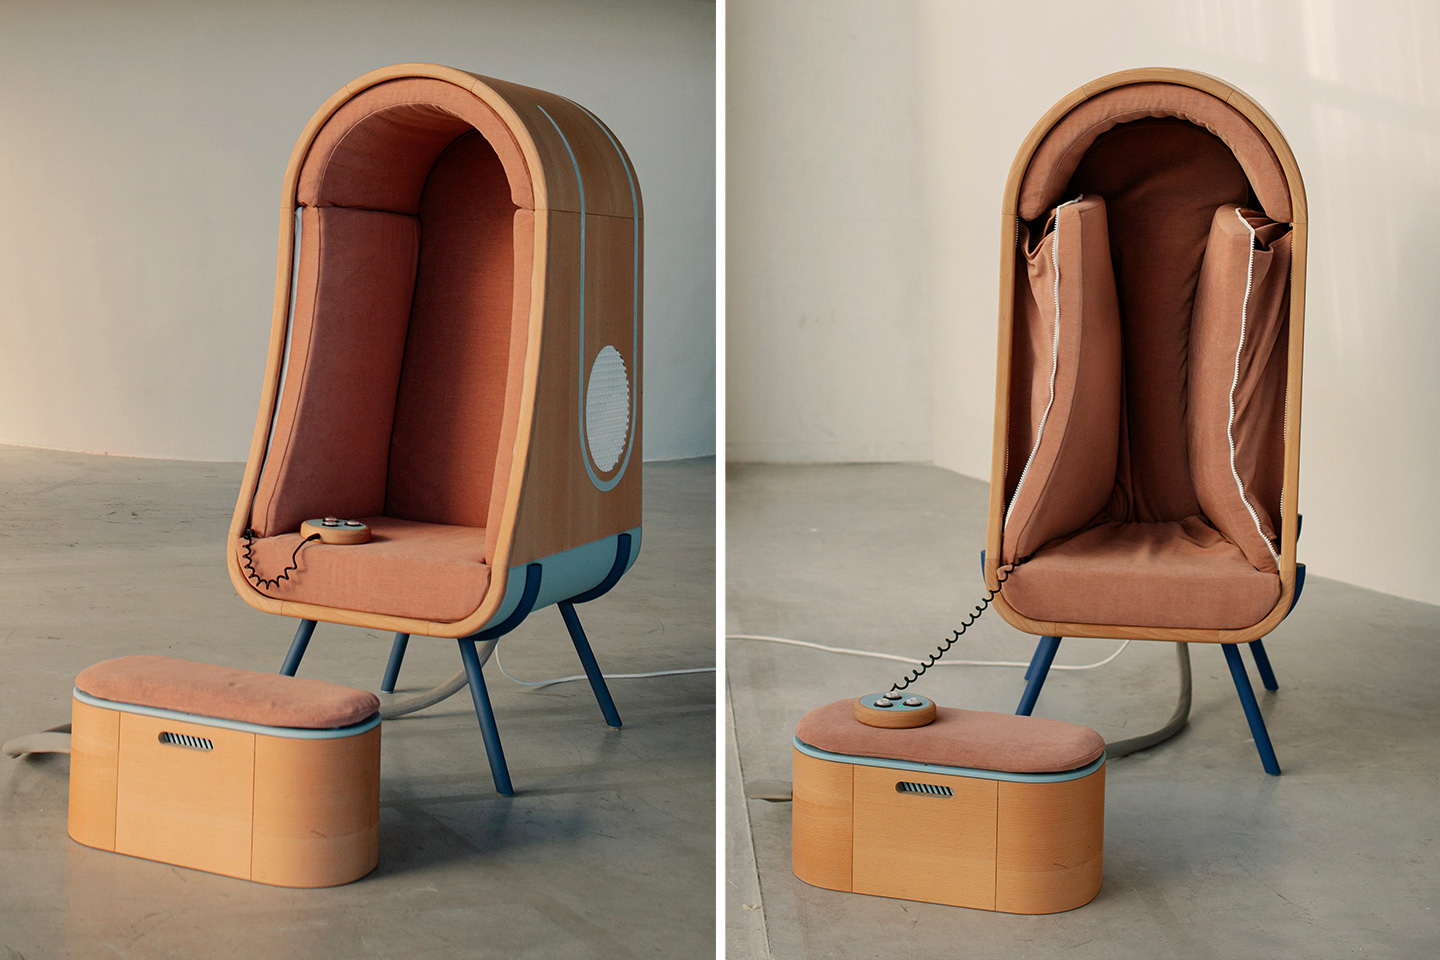 James Dyson Award-Winner OTO Chair for Autistic People